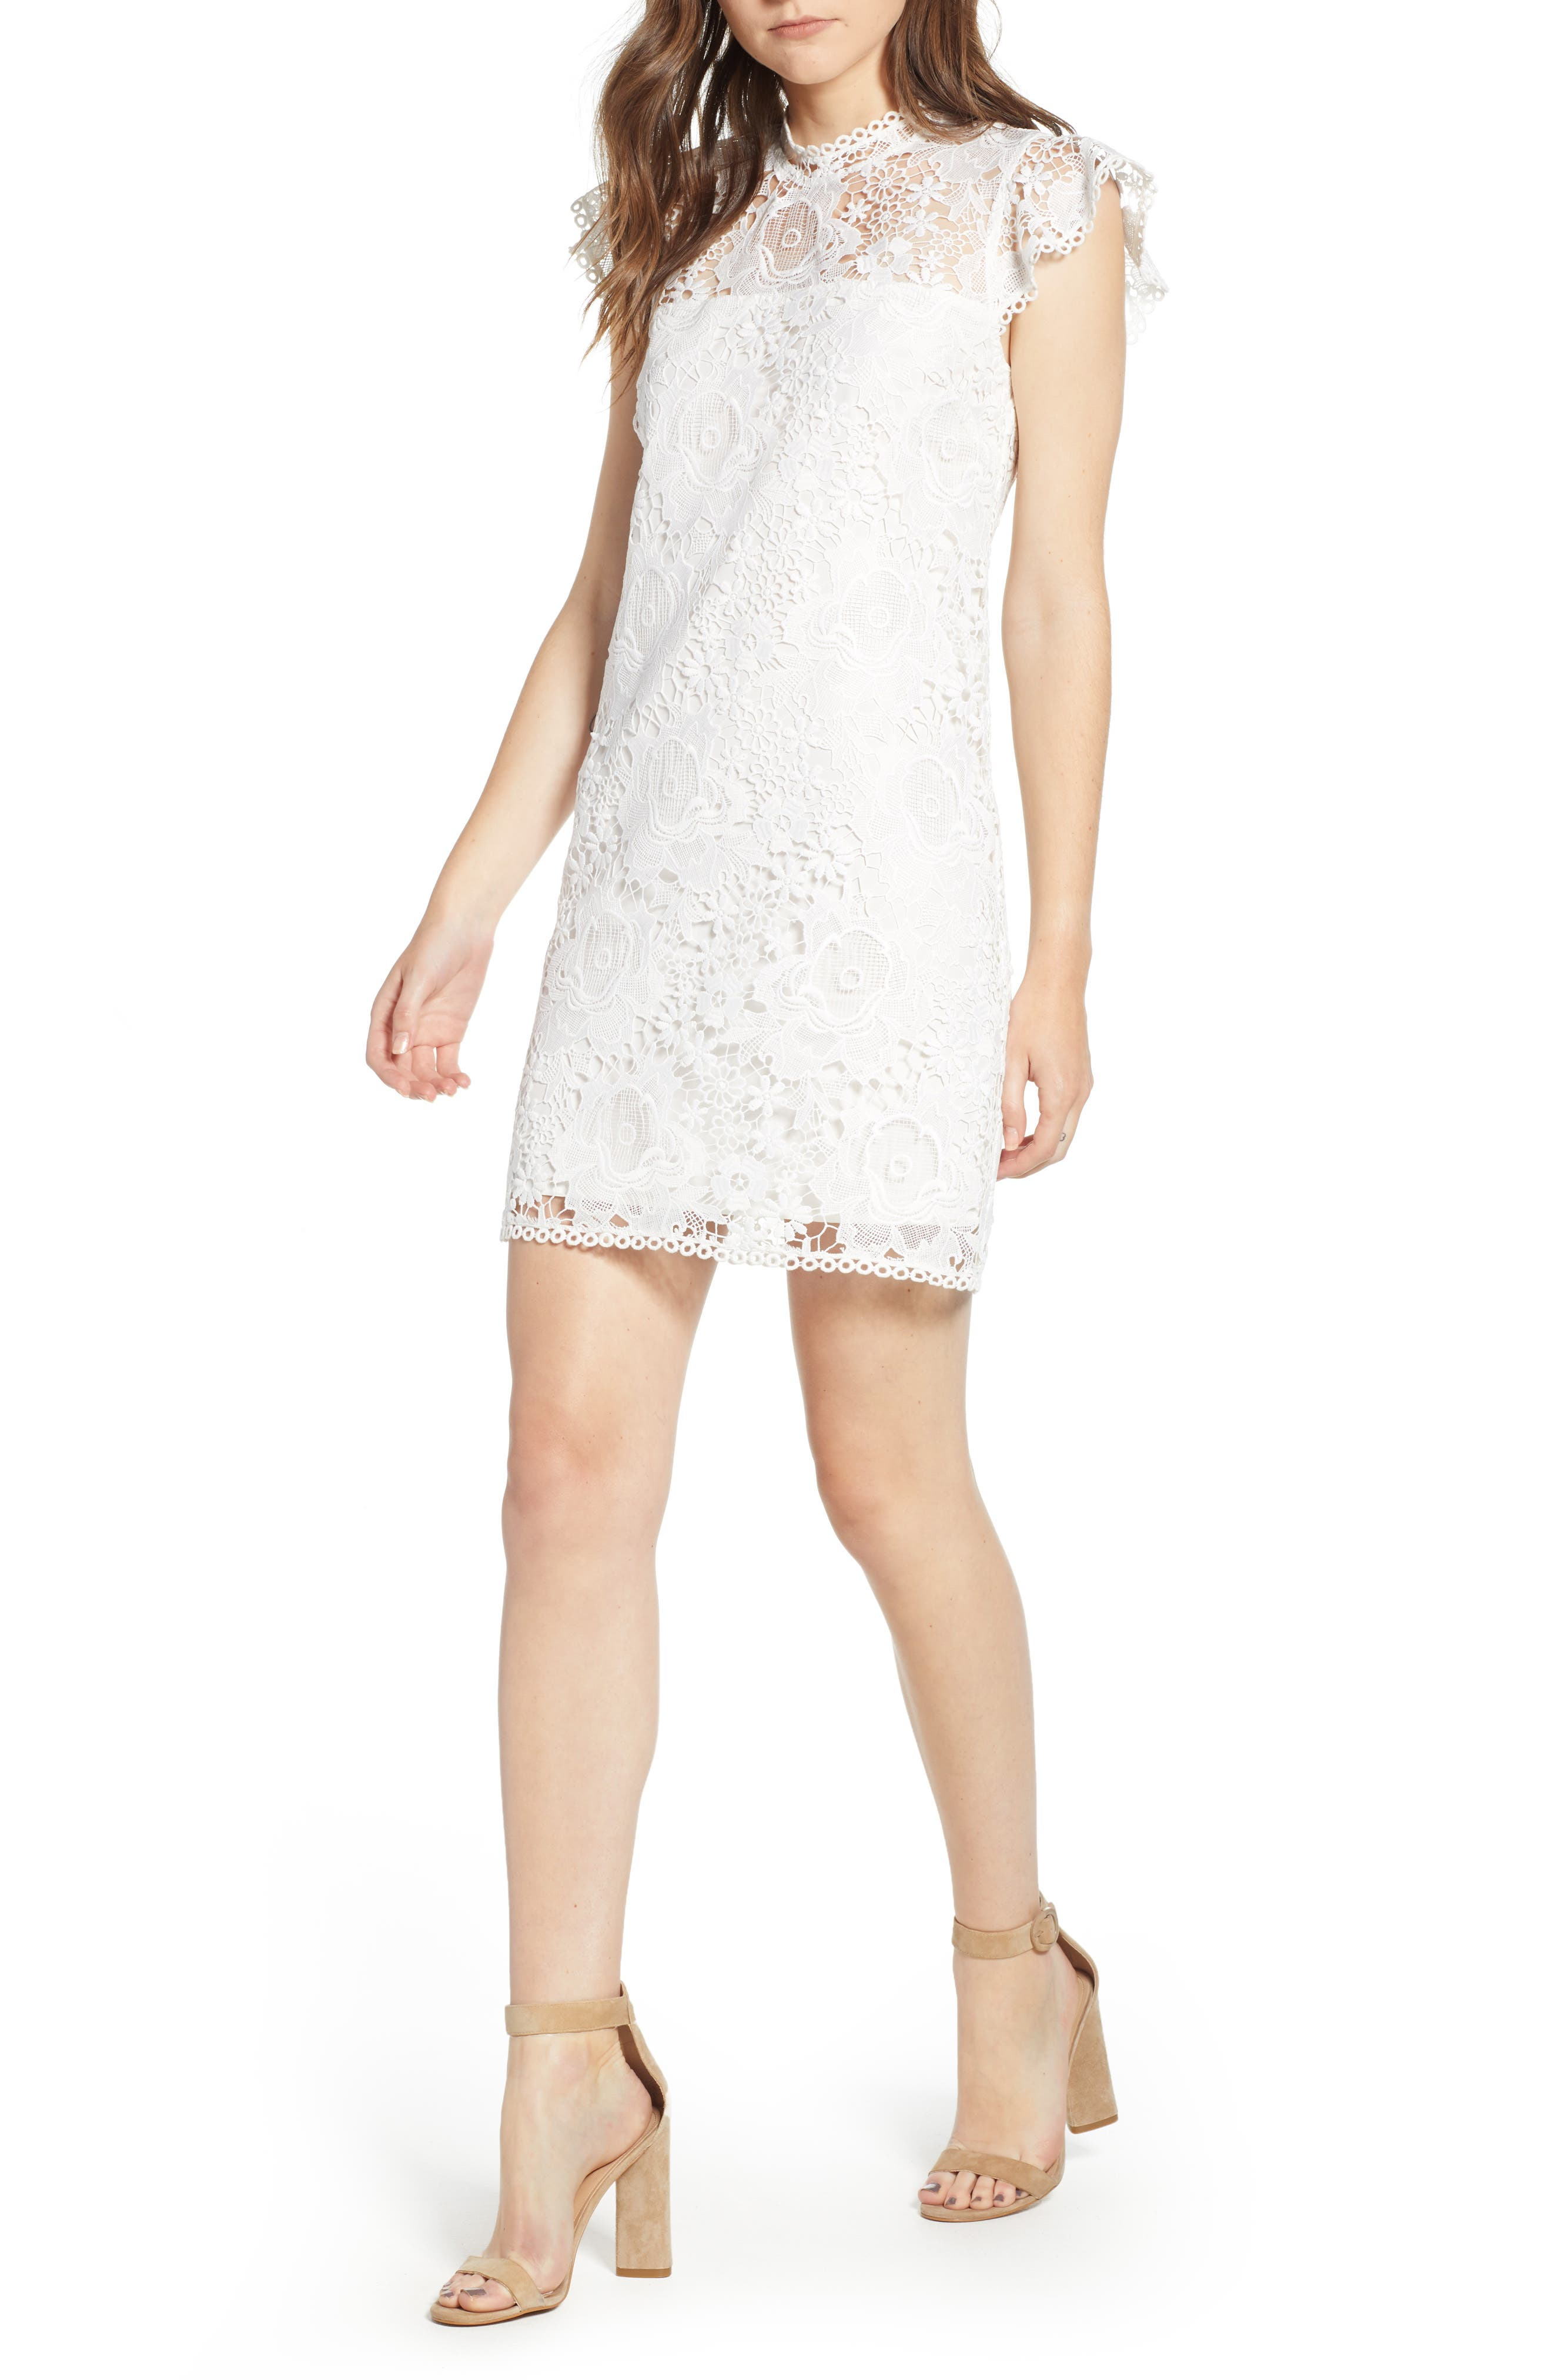 CUPCAKES AND CASHMERE Floral Lace Shift Dress, Main, color, WHITE